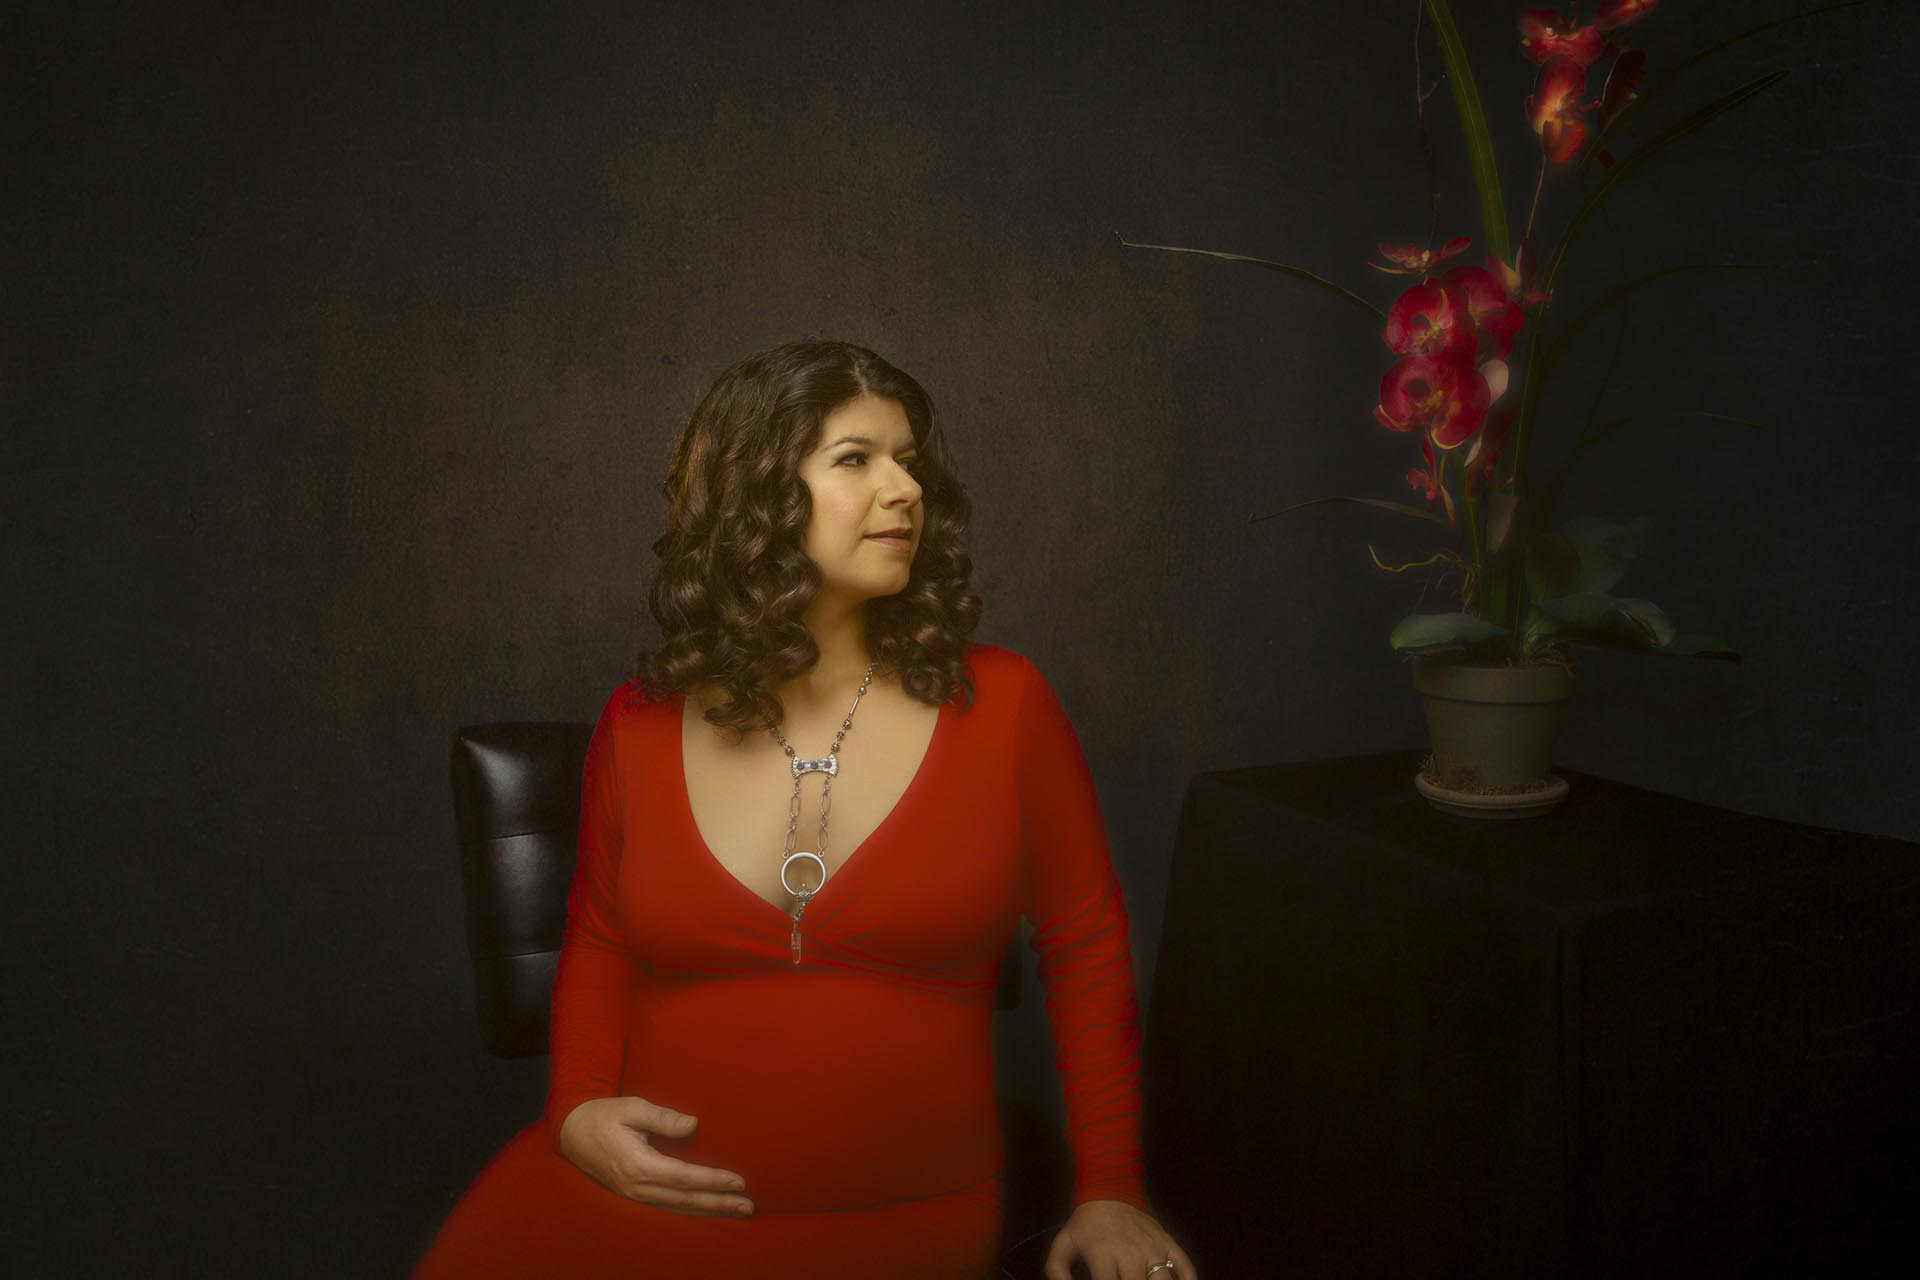 Color maternity portrait of a woman wearing a red maternity dress